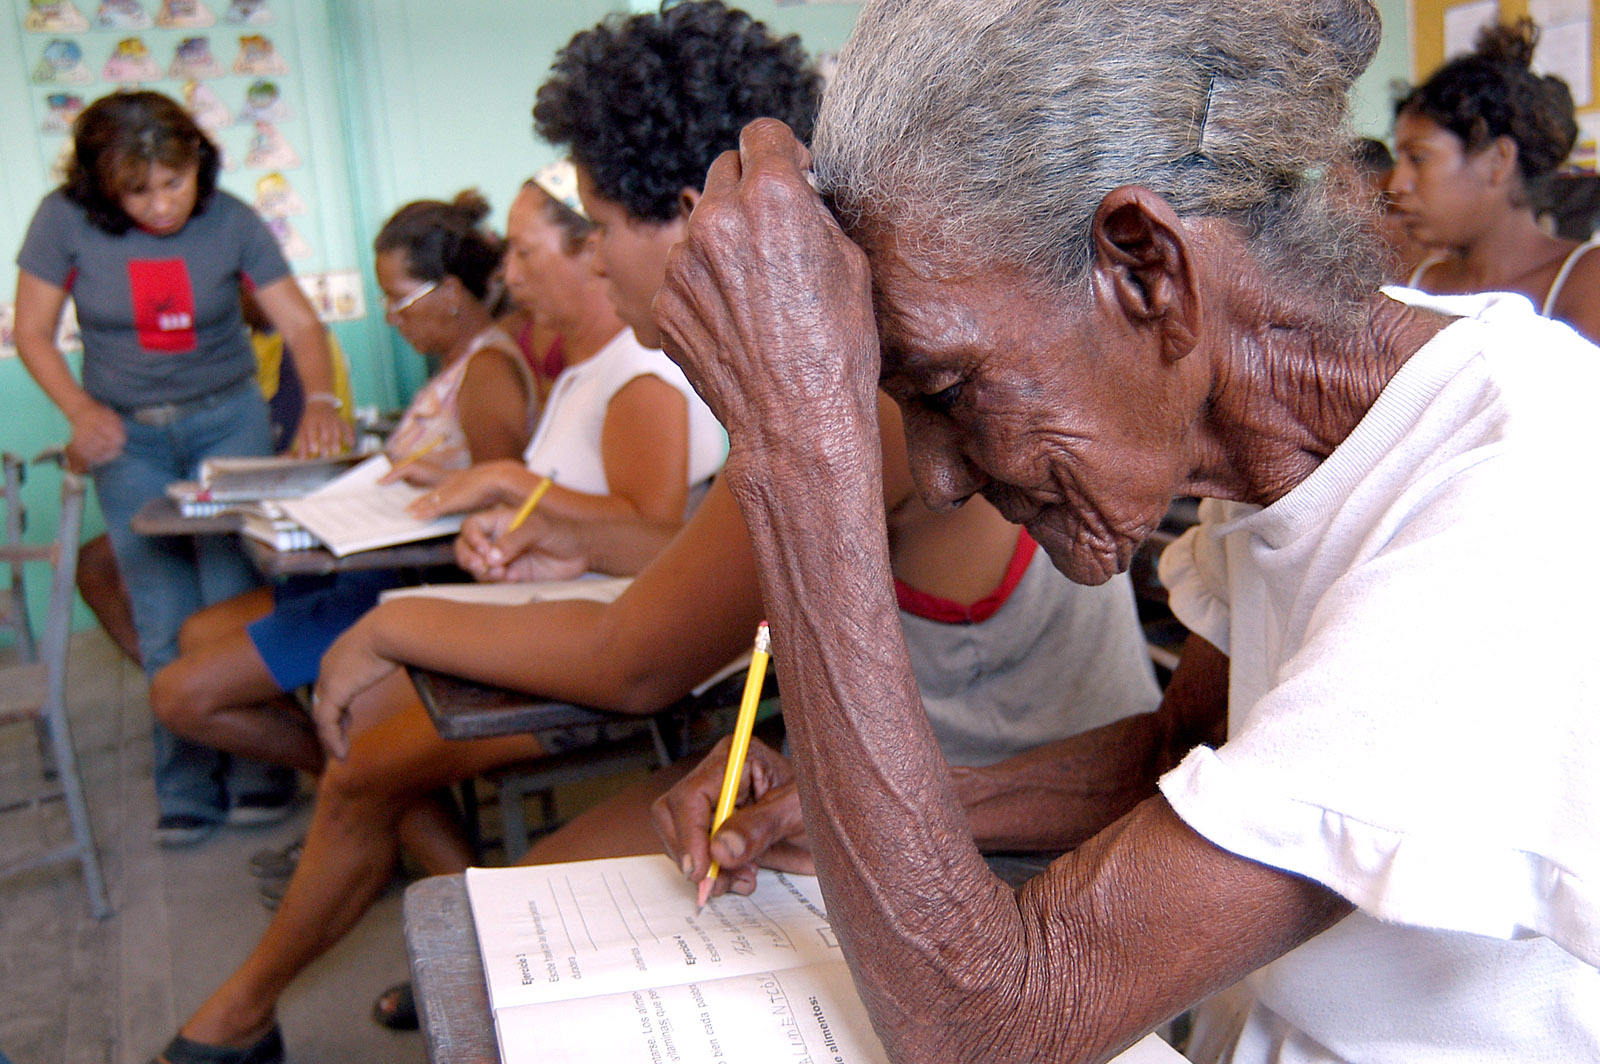 Carmen Vásquez, 85, learning to read and write at the Misión Robinson, Isla Borracha, Anzoátegui, Venezuela. March 2004. (Franklin Reyes/J.Rebelde via Wikimedia)